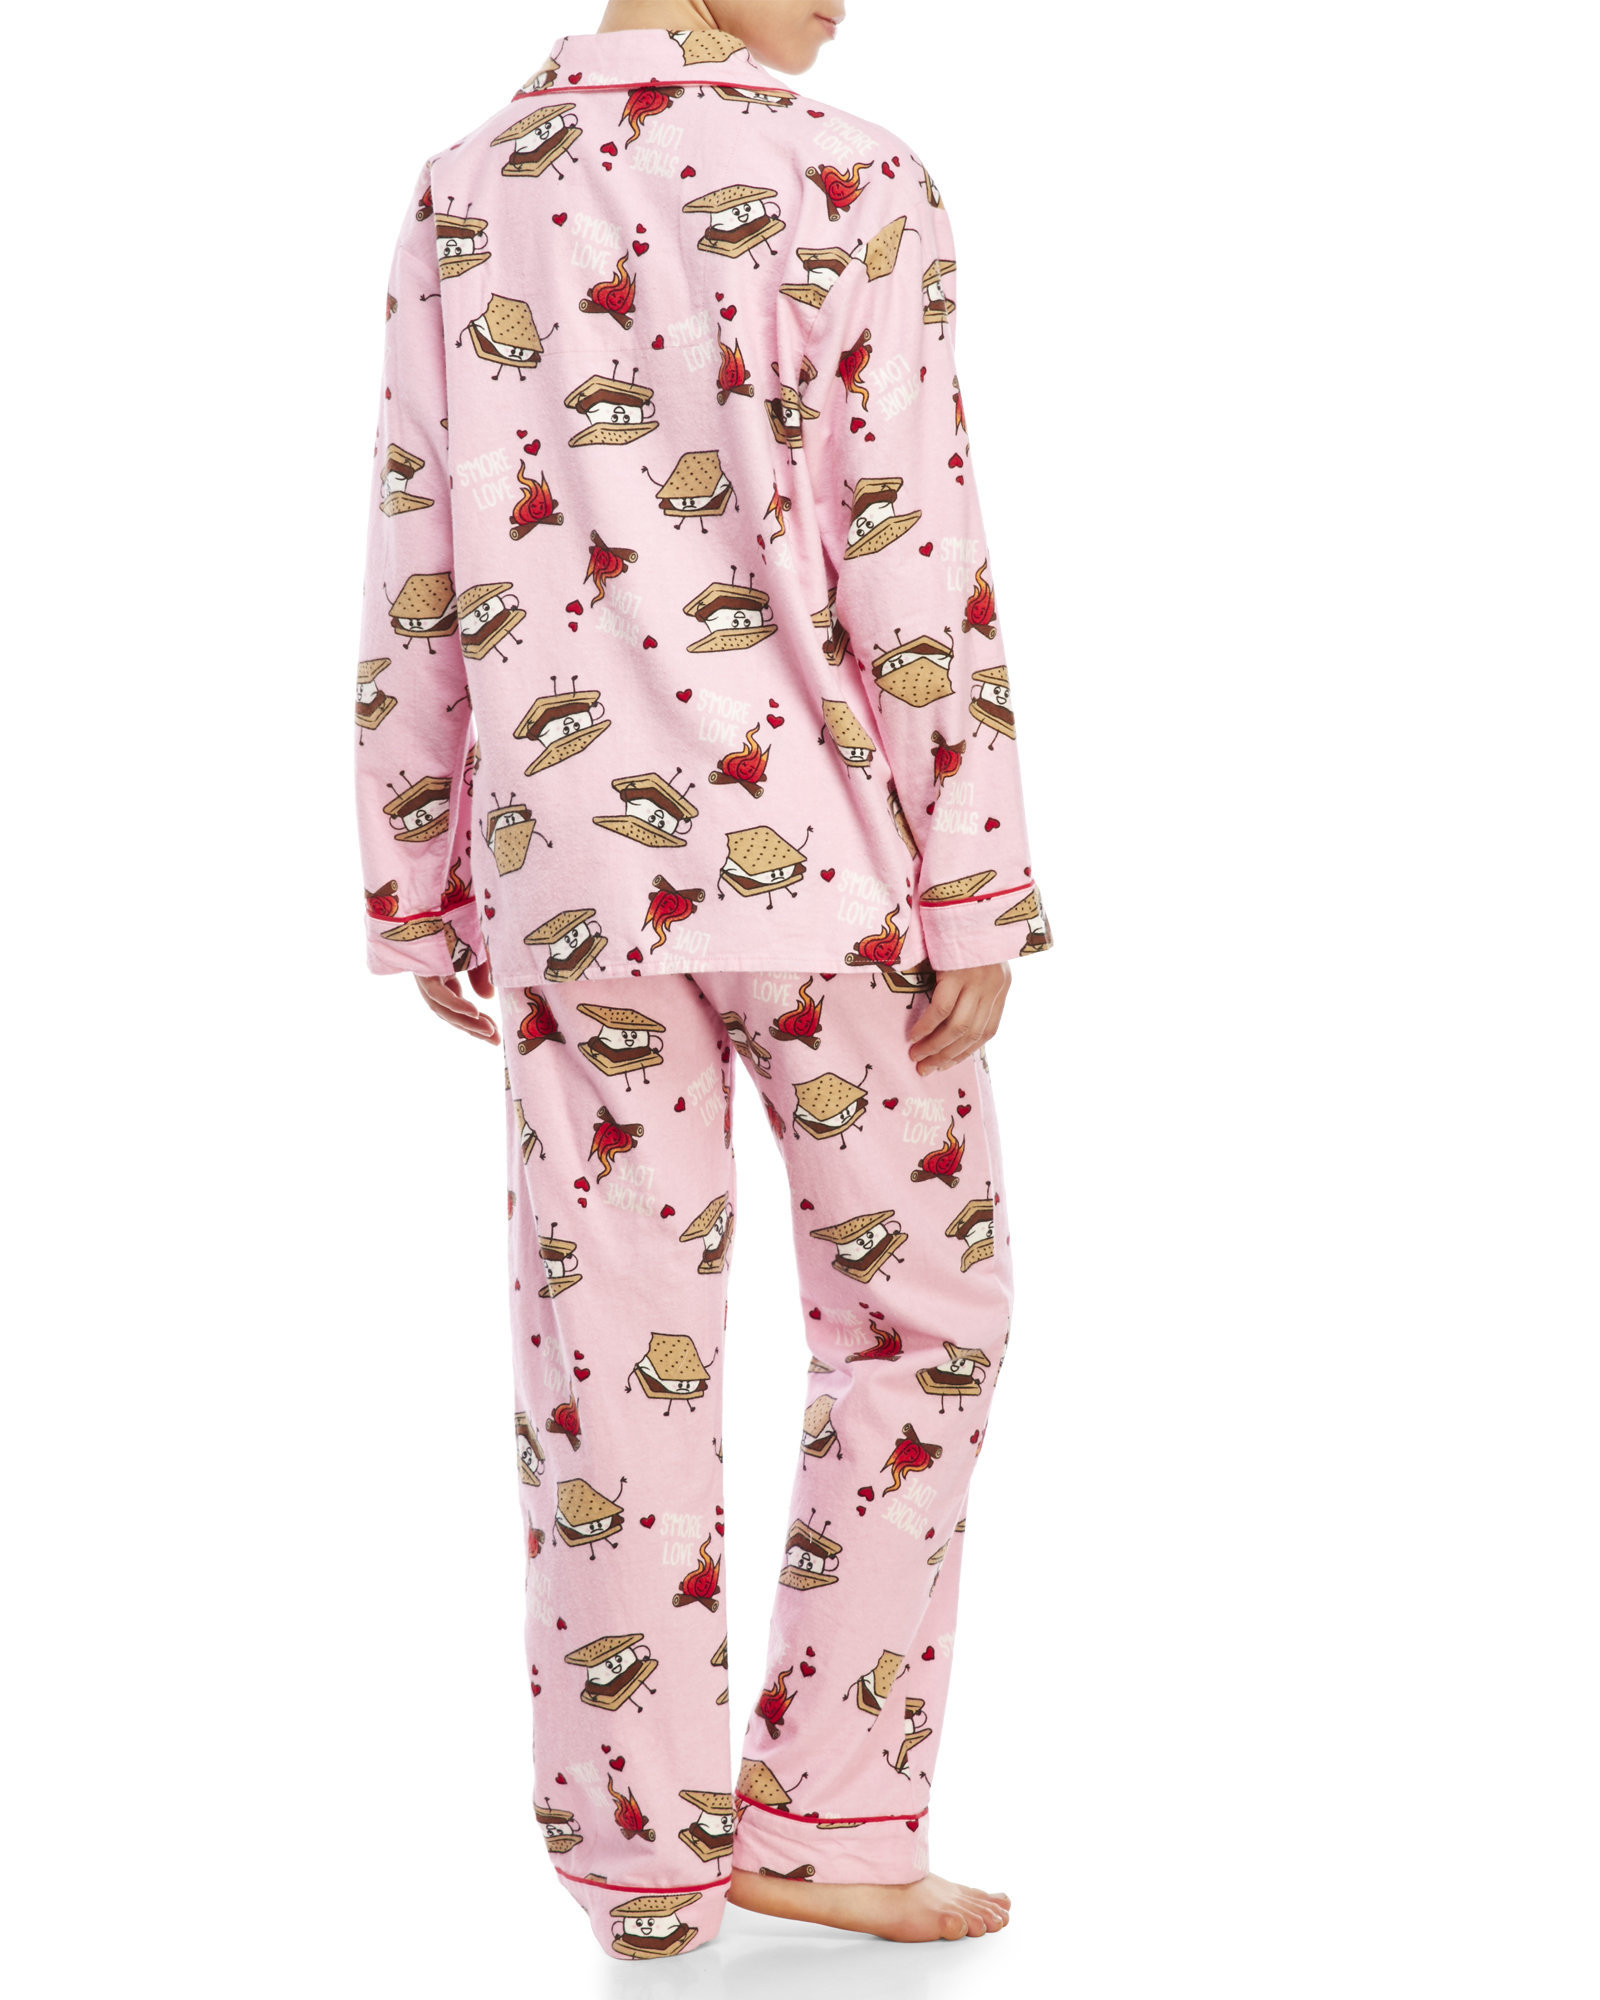 Lyst Pj Salvage S More Love Flannel Pajama Set In Pink